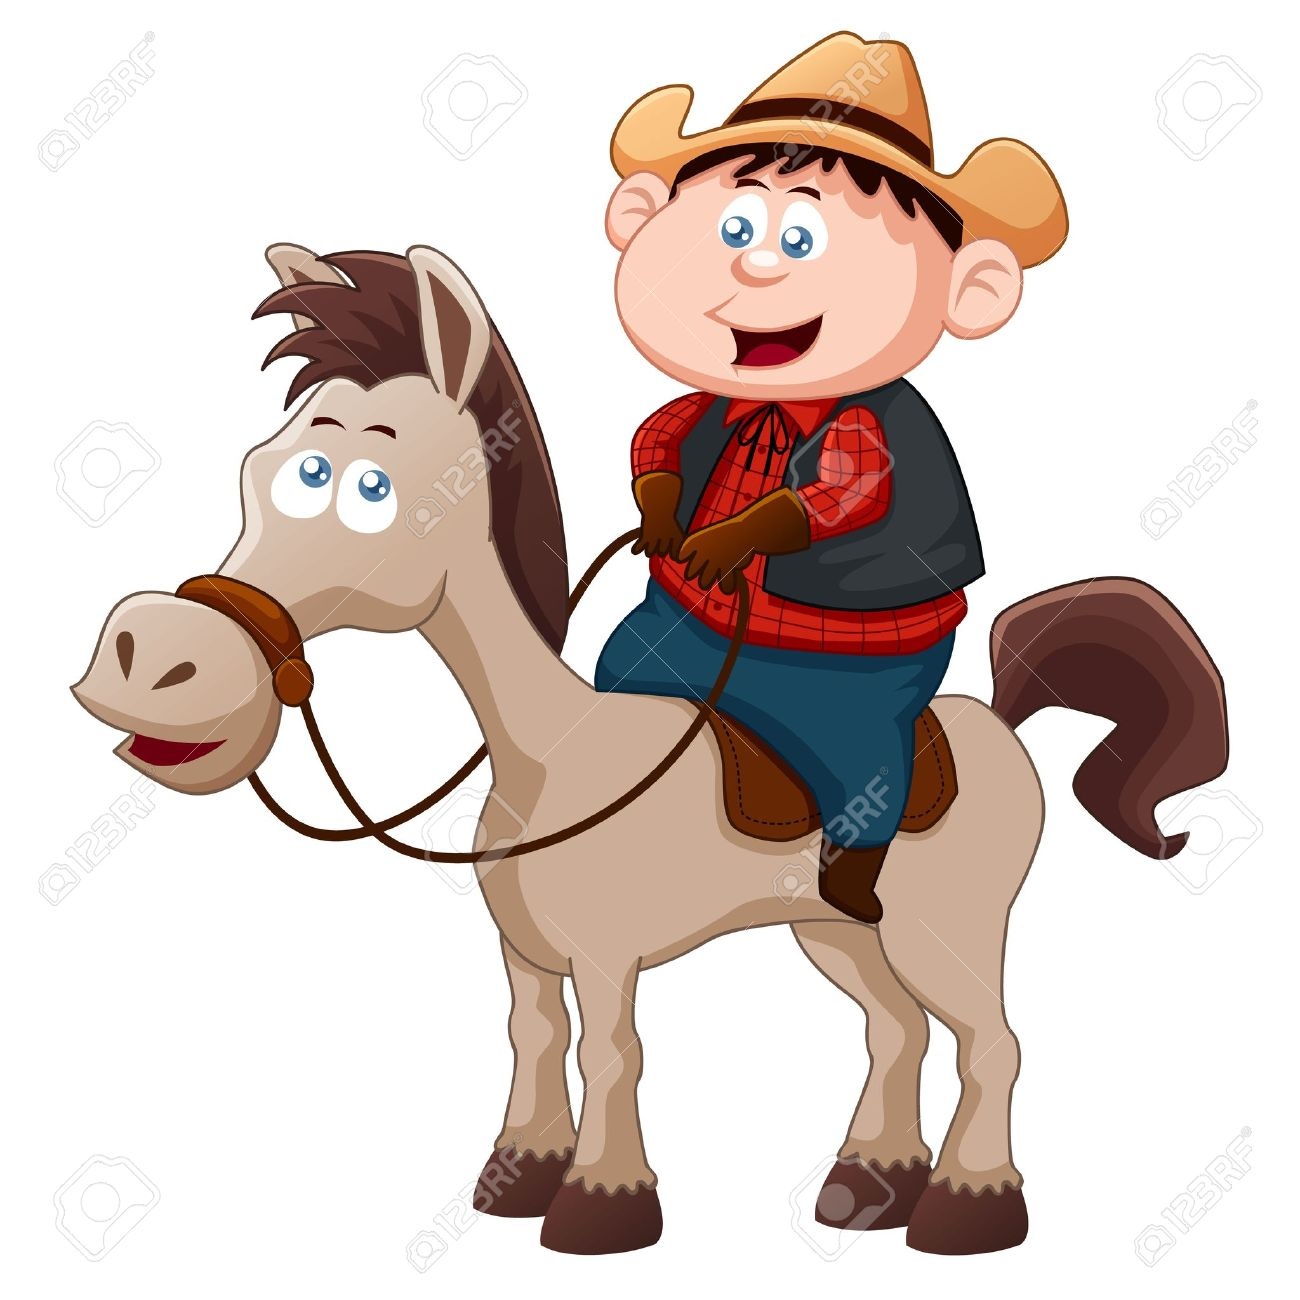 7321 Cowboy free clipart.